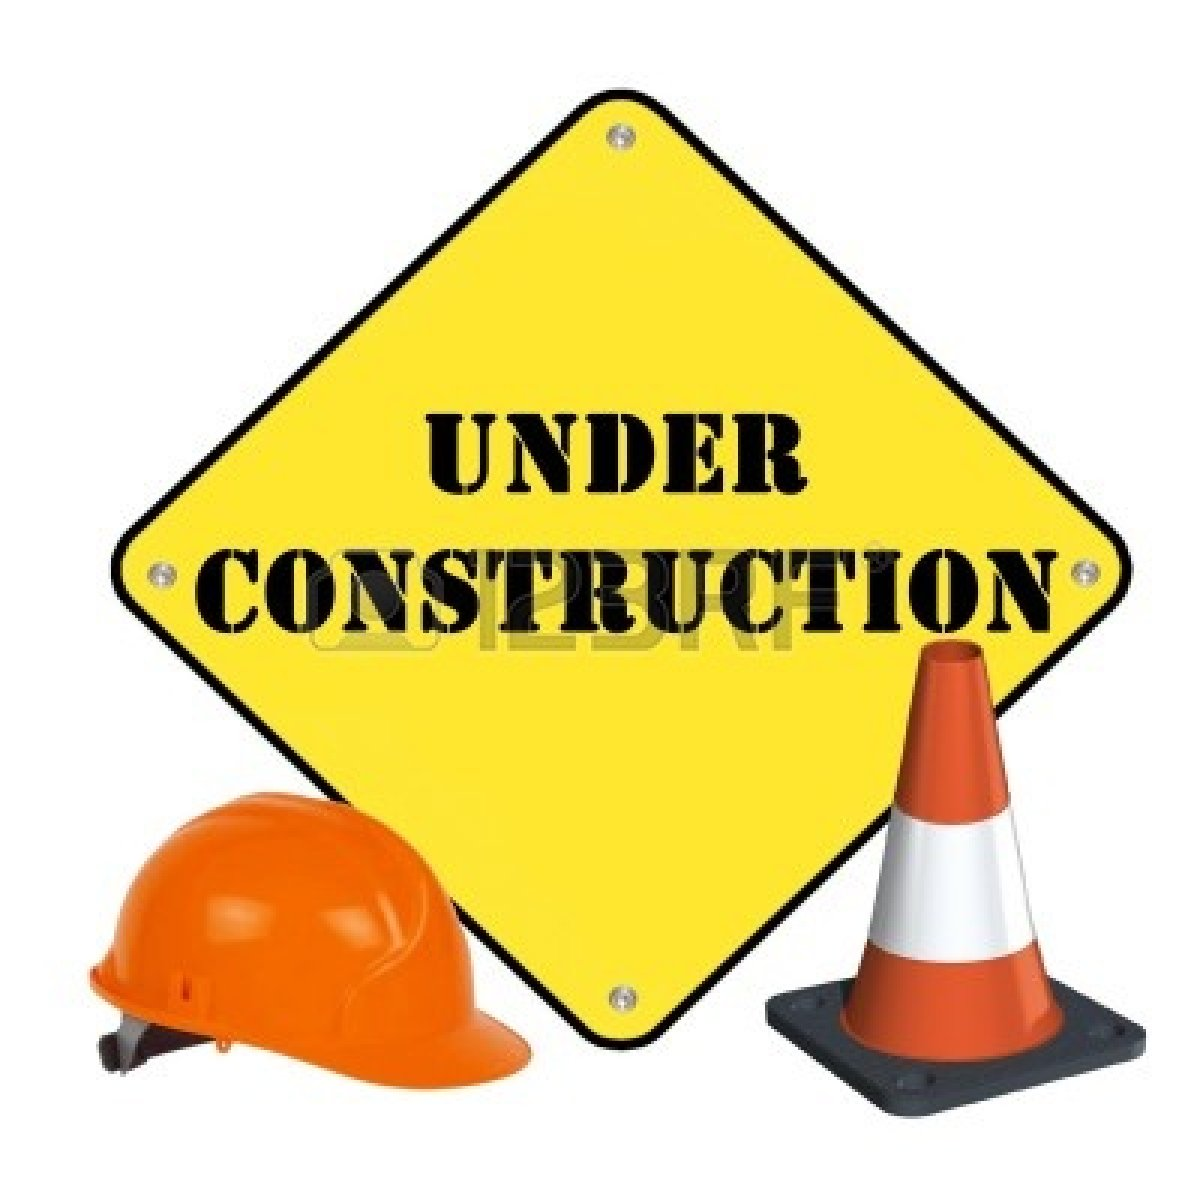 Under Construction Signs Clipart - Clipart Kid